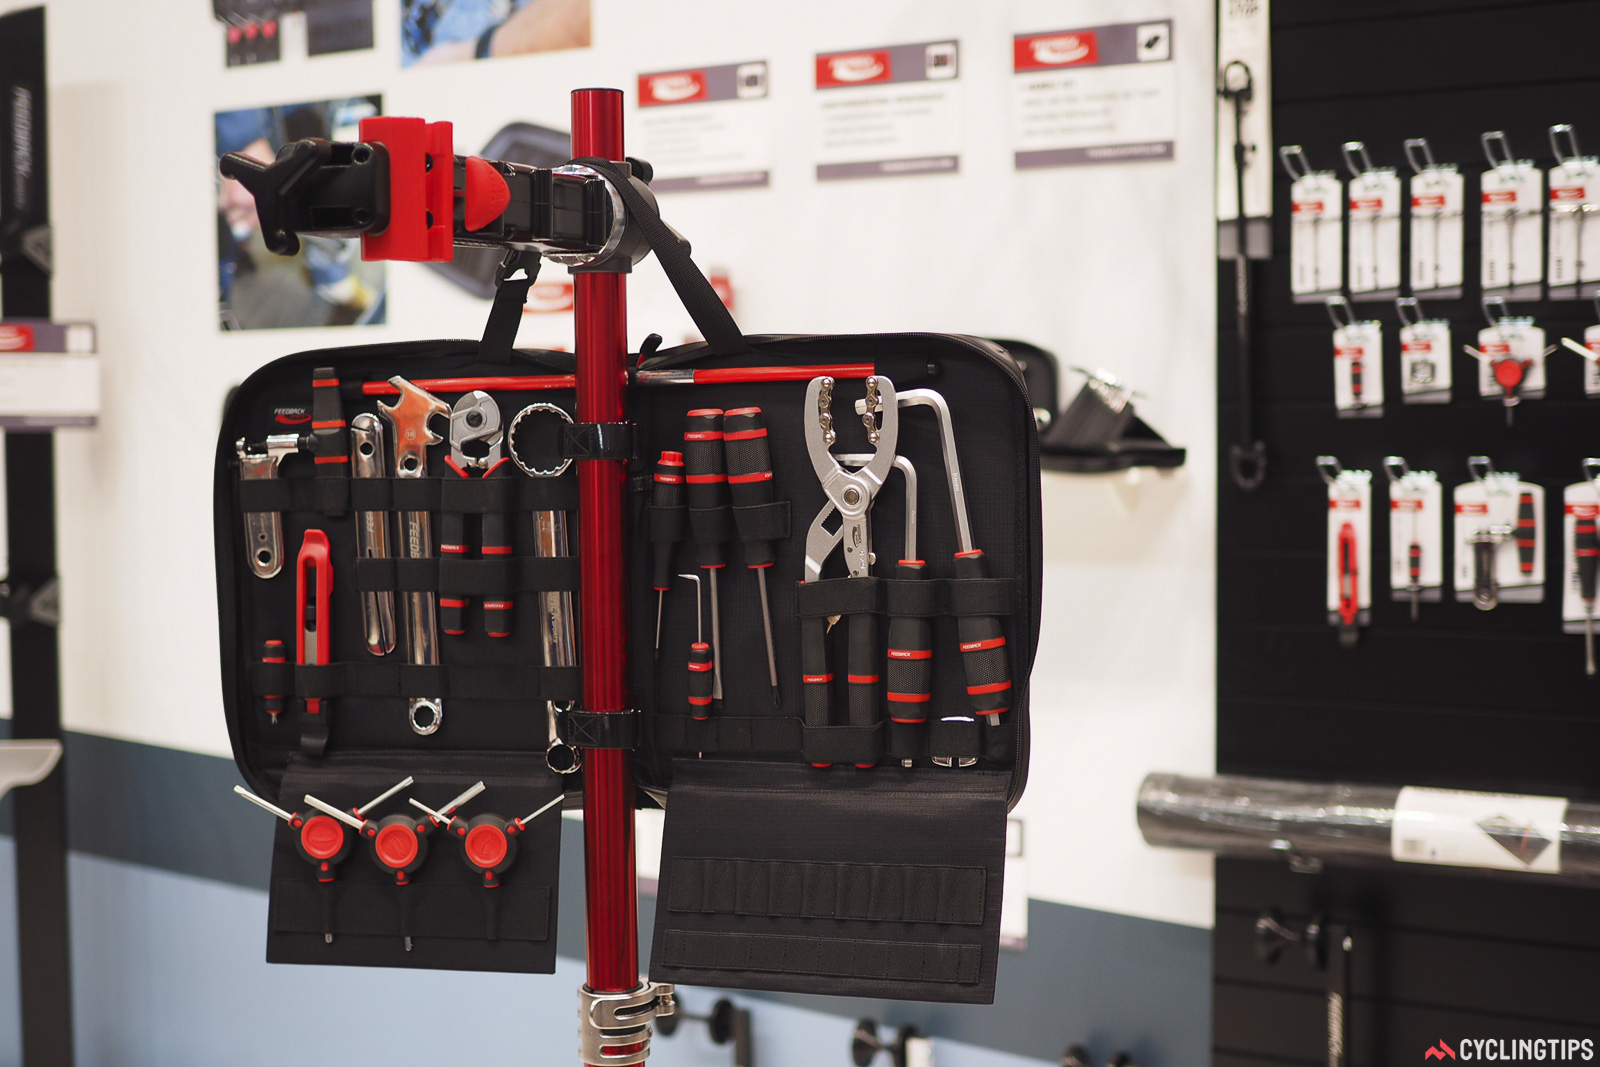 Feedback Sports has now expanded into hand tools. Headlining the collection is this top-end Team Edition kit, which can be used on its own, but is designed to conveniently mount to a Feedback Sports repair stand. Retail cost is US$250. Photo: James Huang.